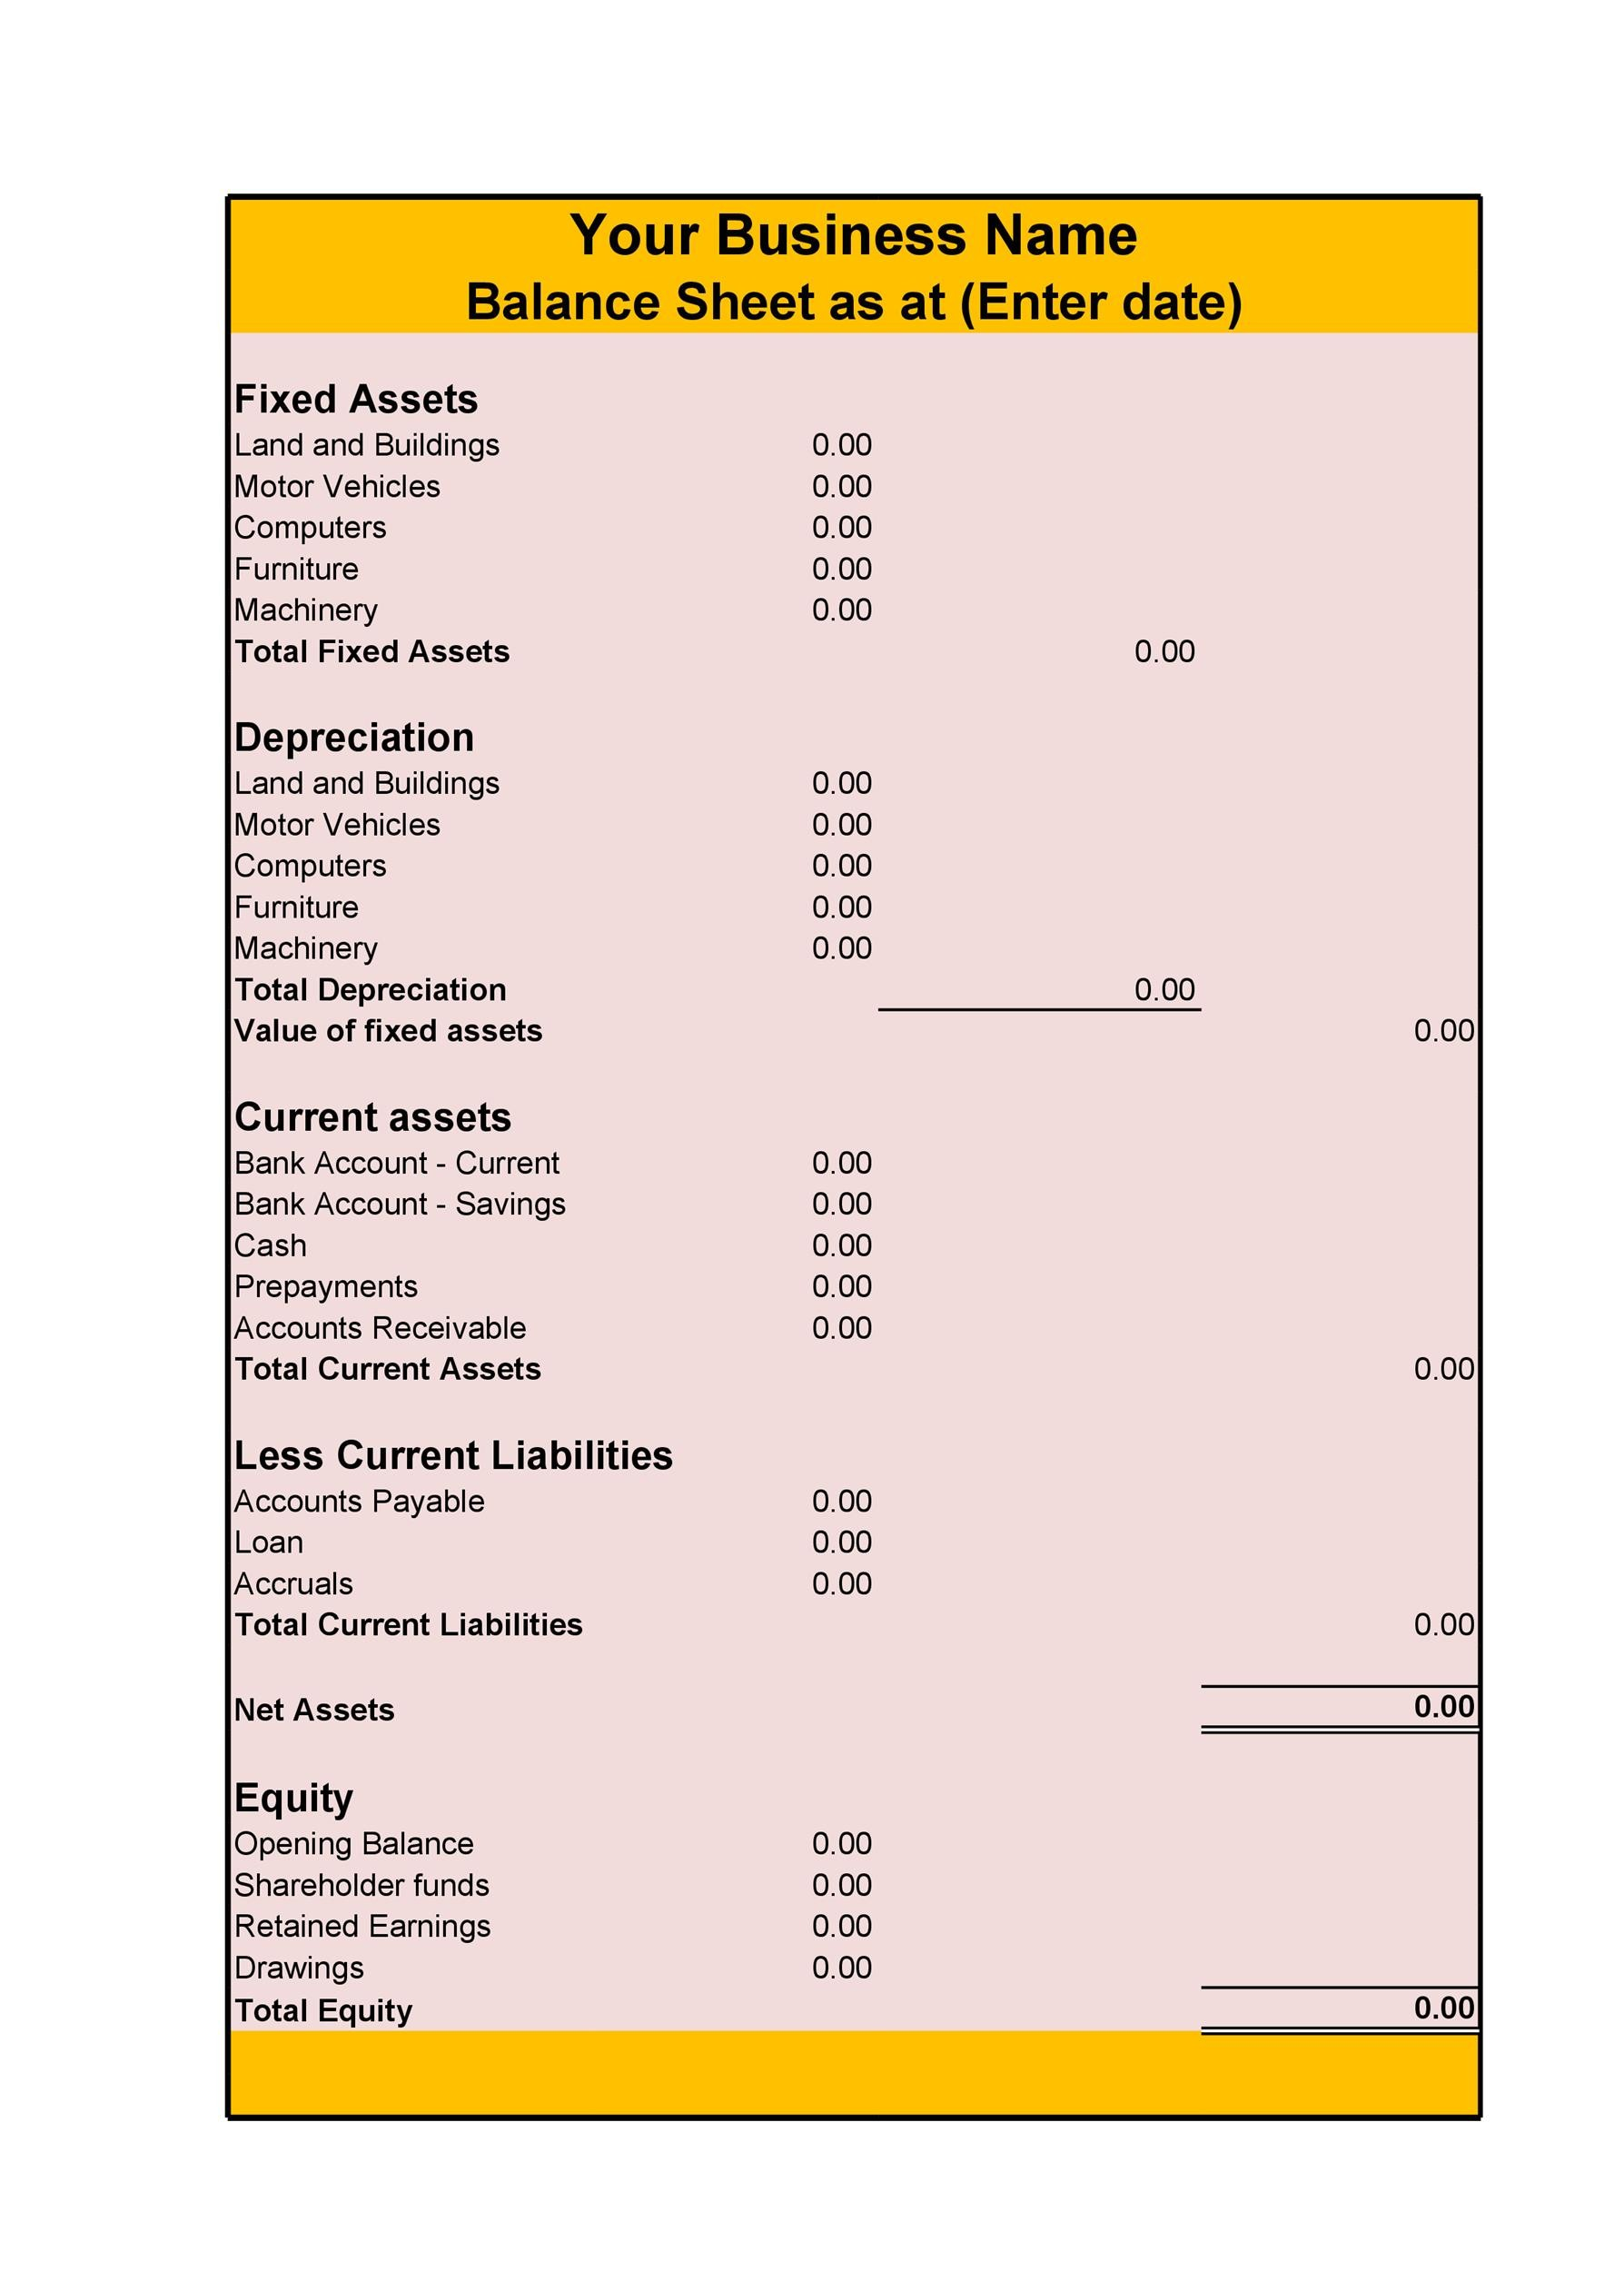 High Quality Printable Balance Sheet Template 29. Icon. Download 11.29 KB